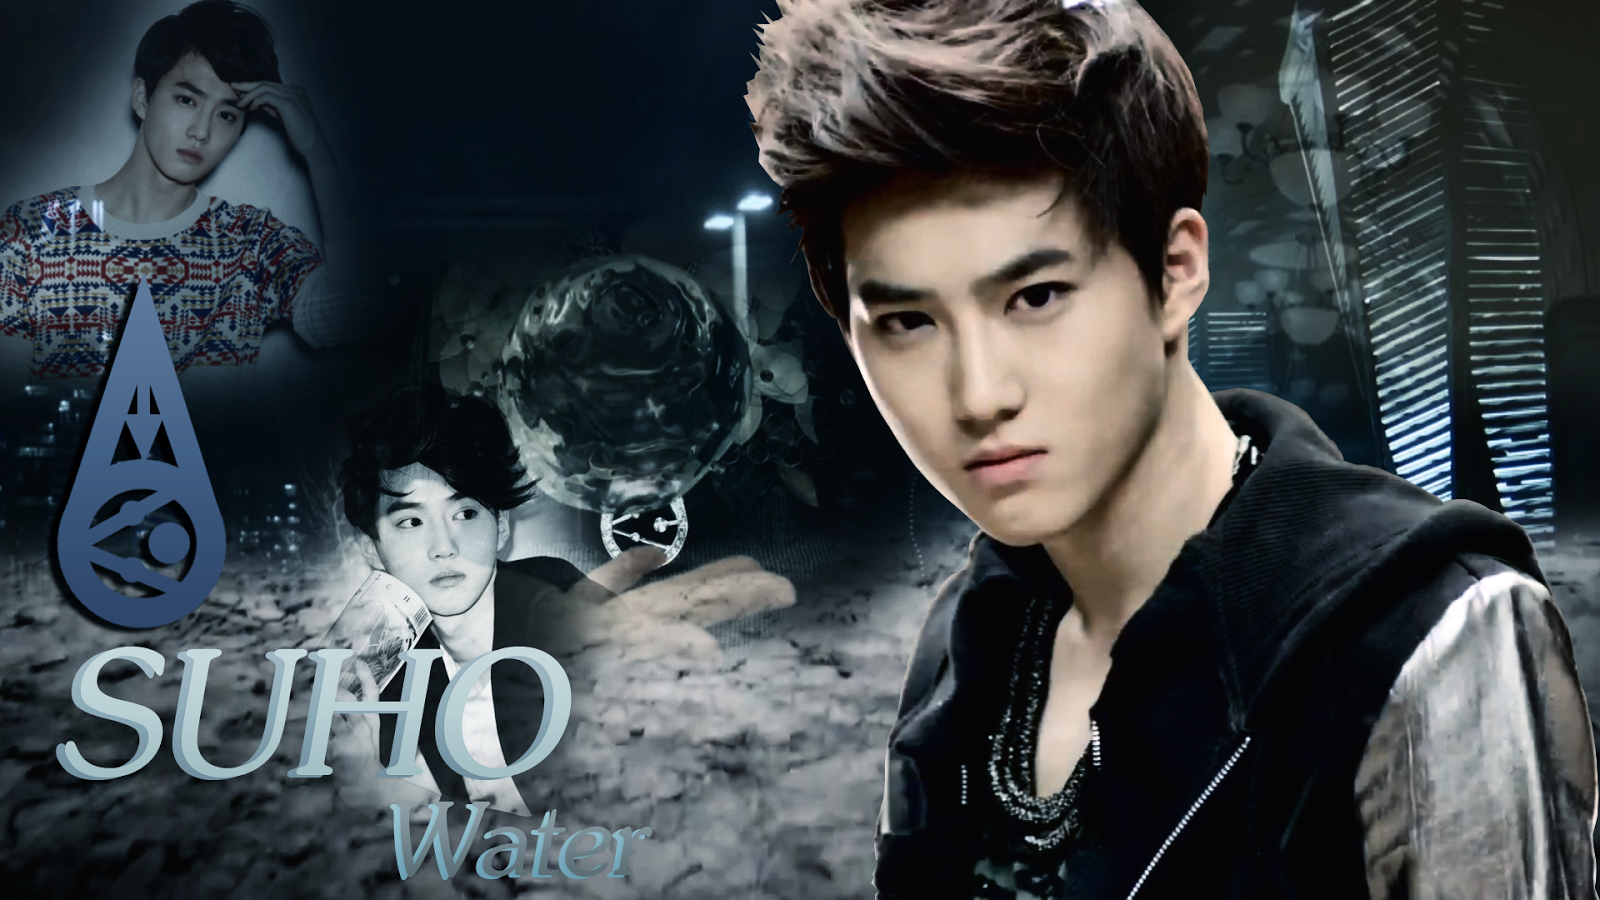 Exo Suho Water Wide Screen Wallpapers